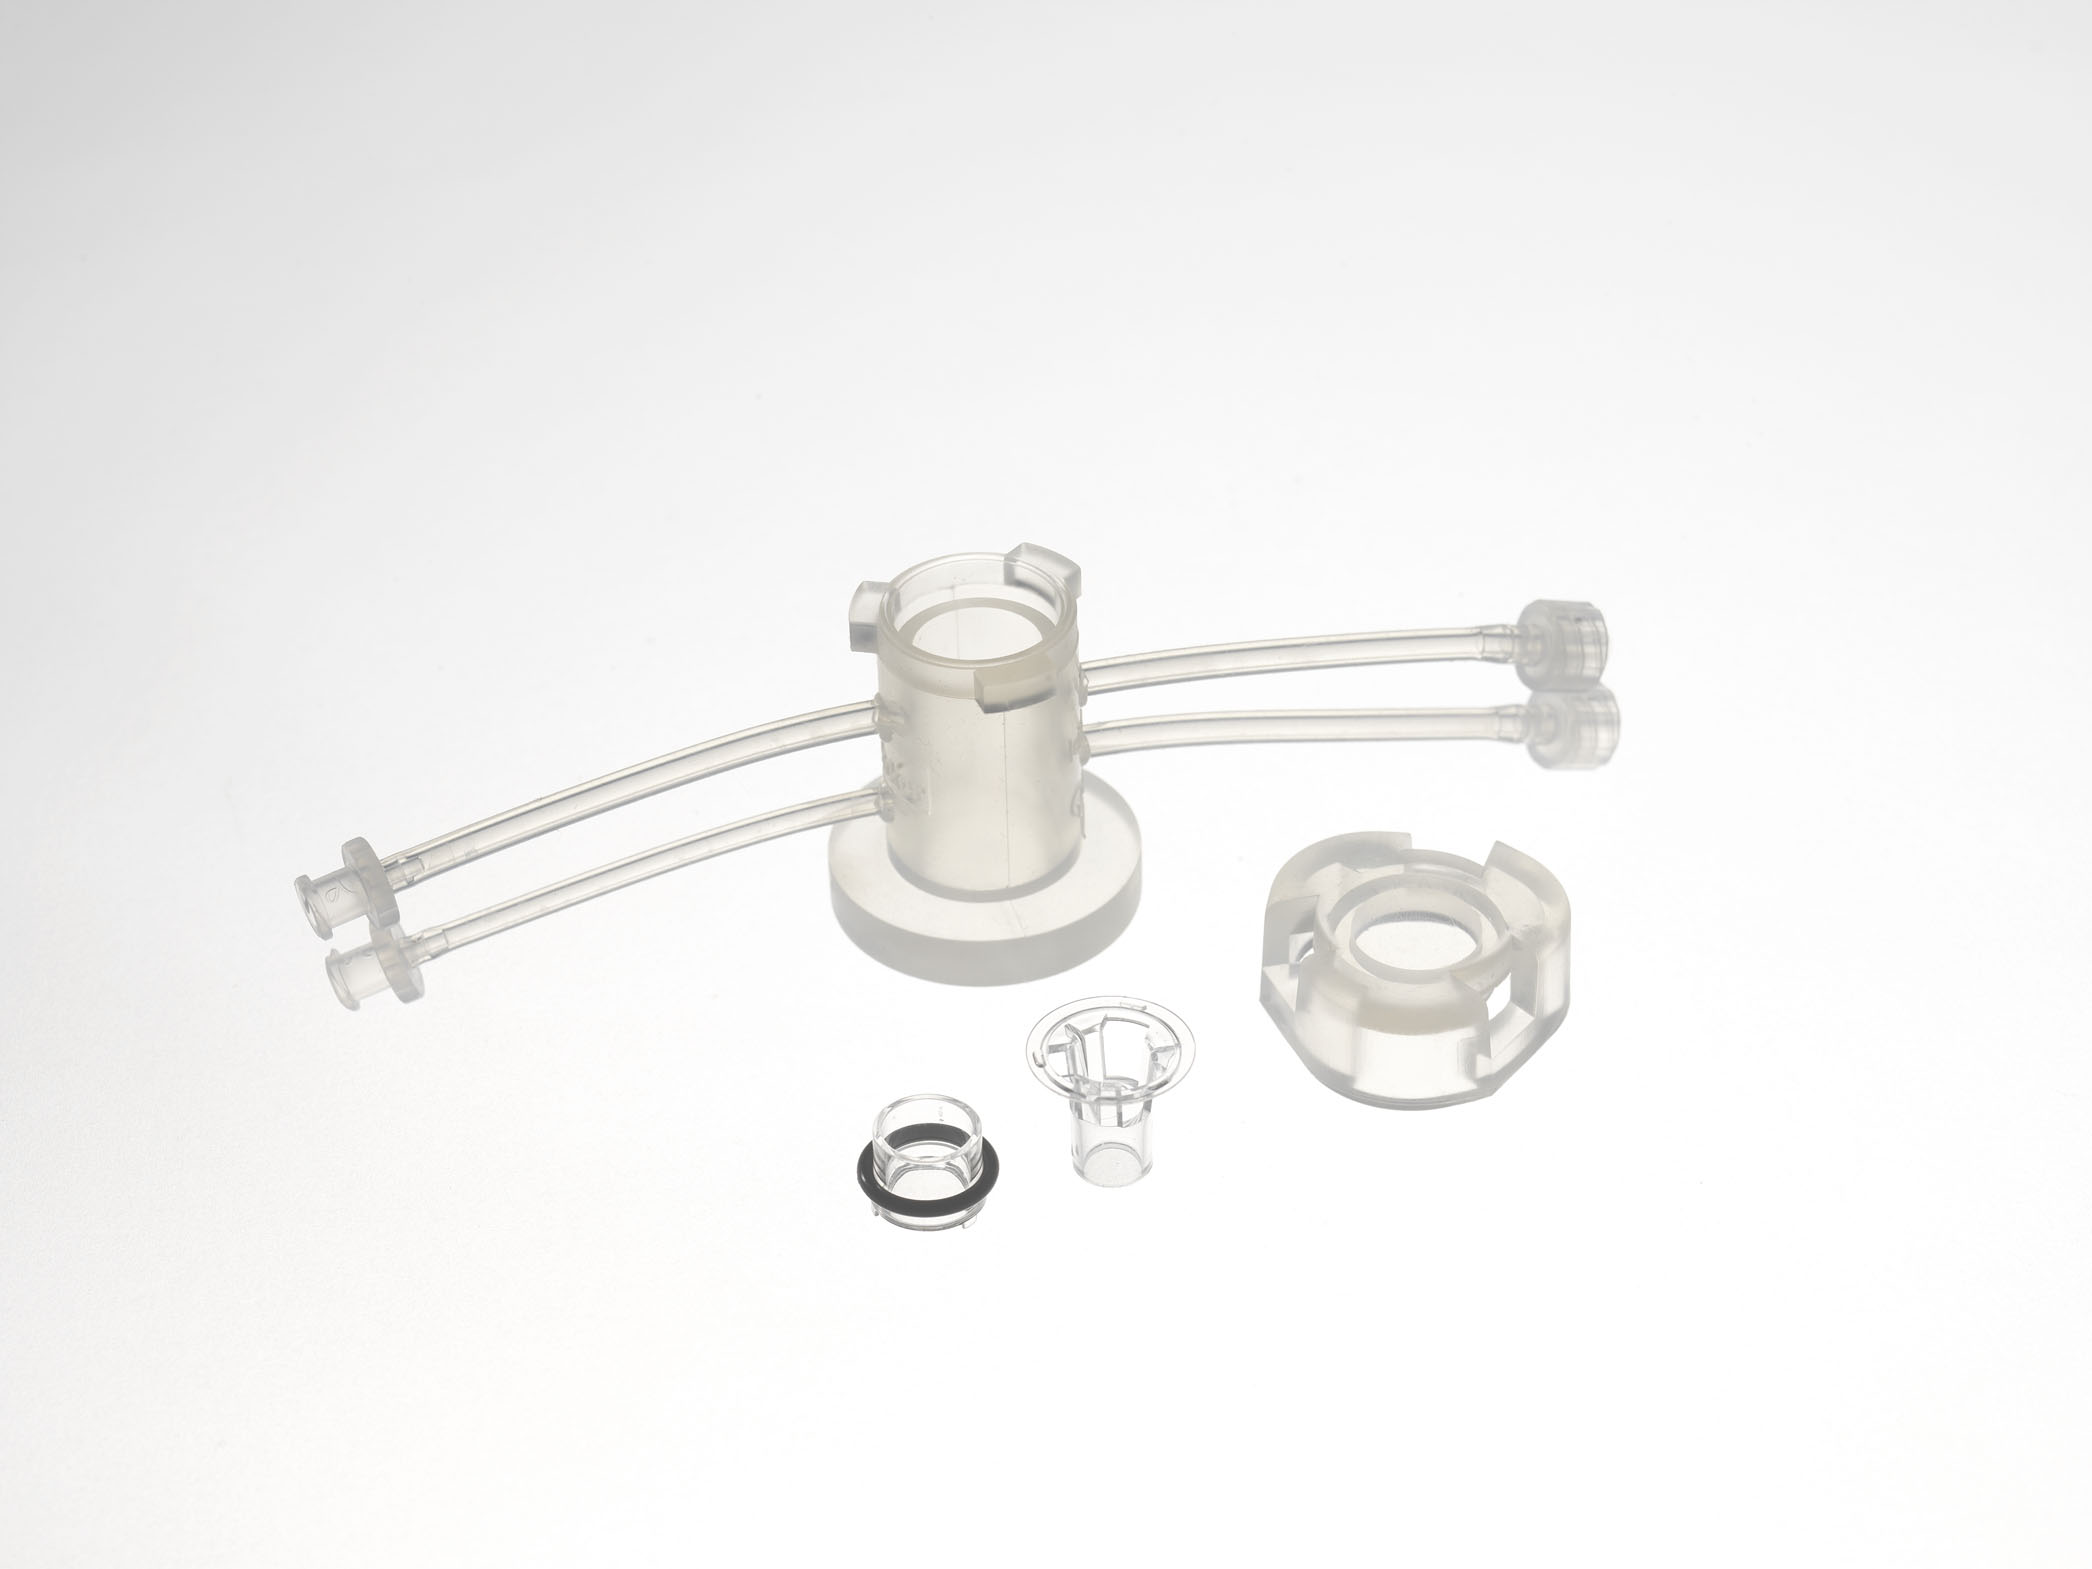 QV600 chamber and accessories